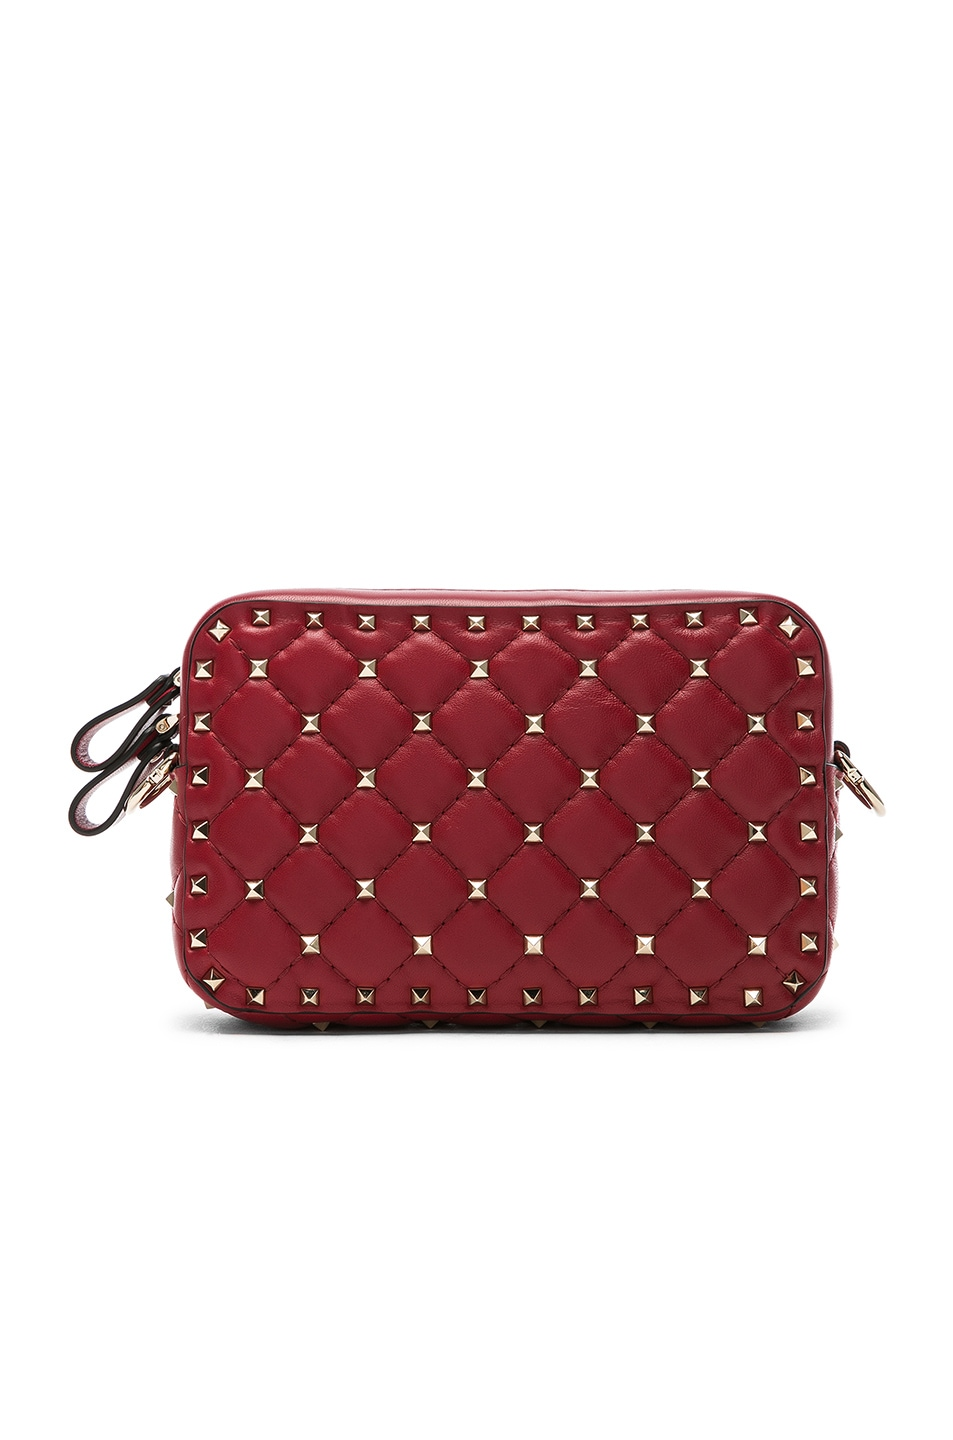 Image 2 of Valentino Rockstud Spike Crossbody Bag in Red